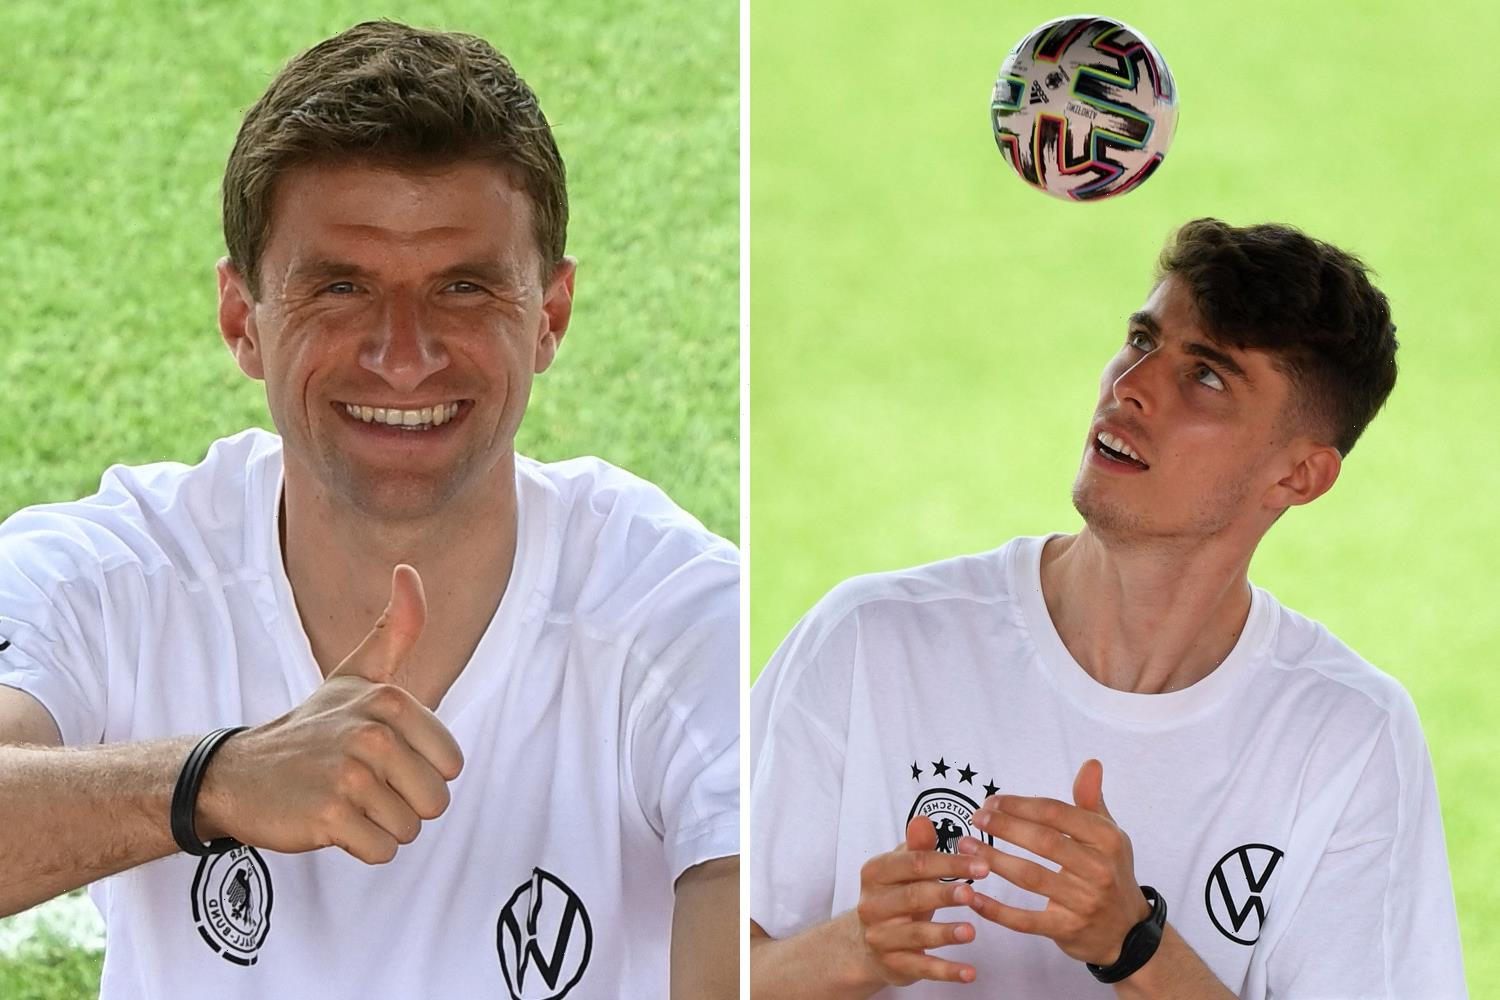 Chelsea star Kai Havertz labels Thomas Muller as Germany's 'third assistant coach' and praises his professionalism